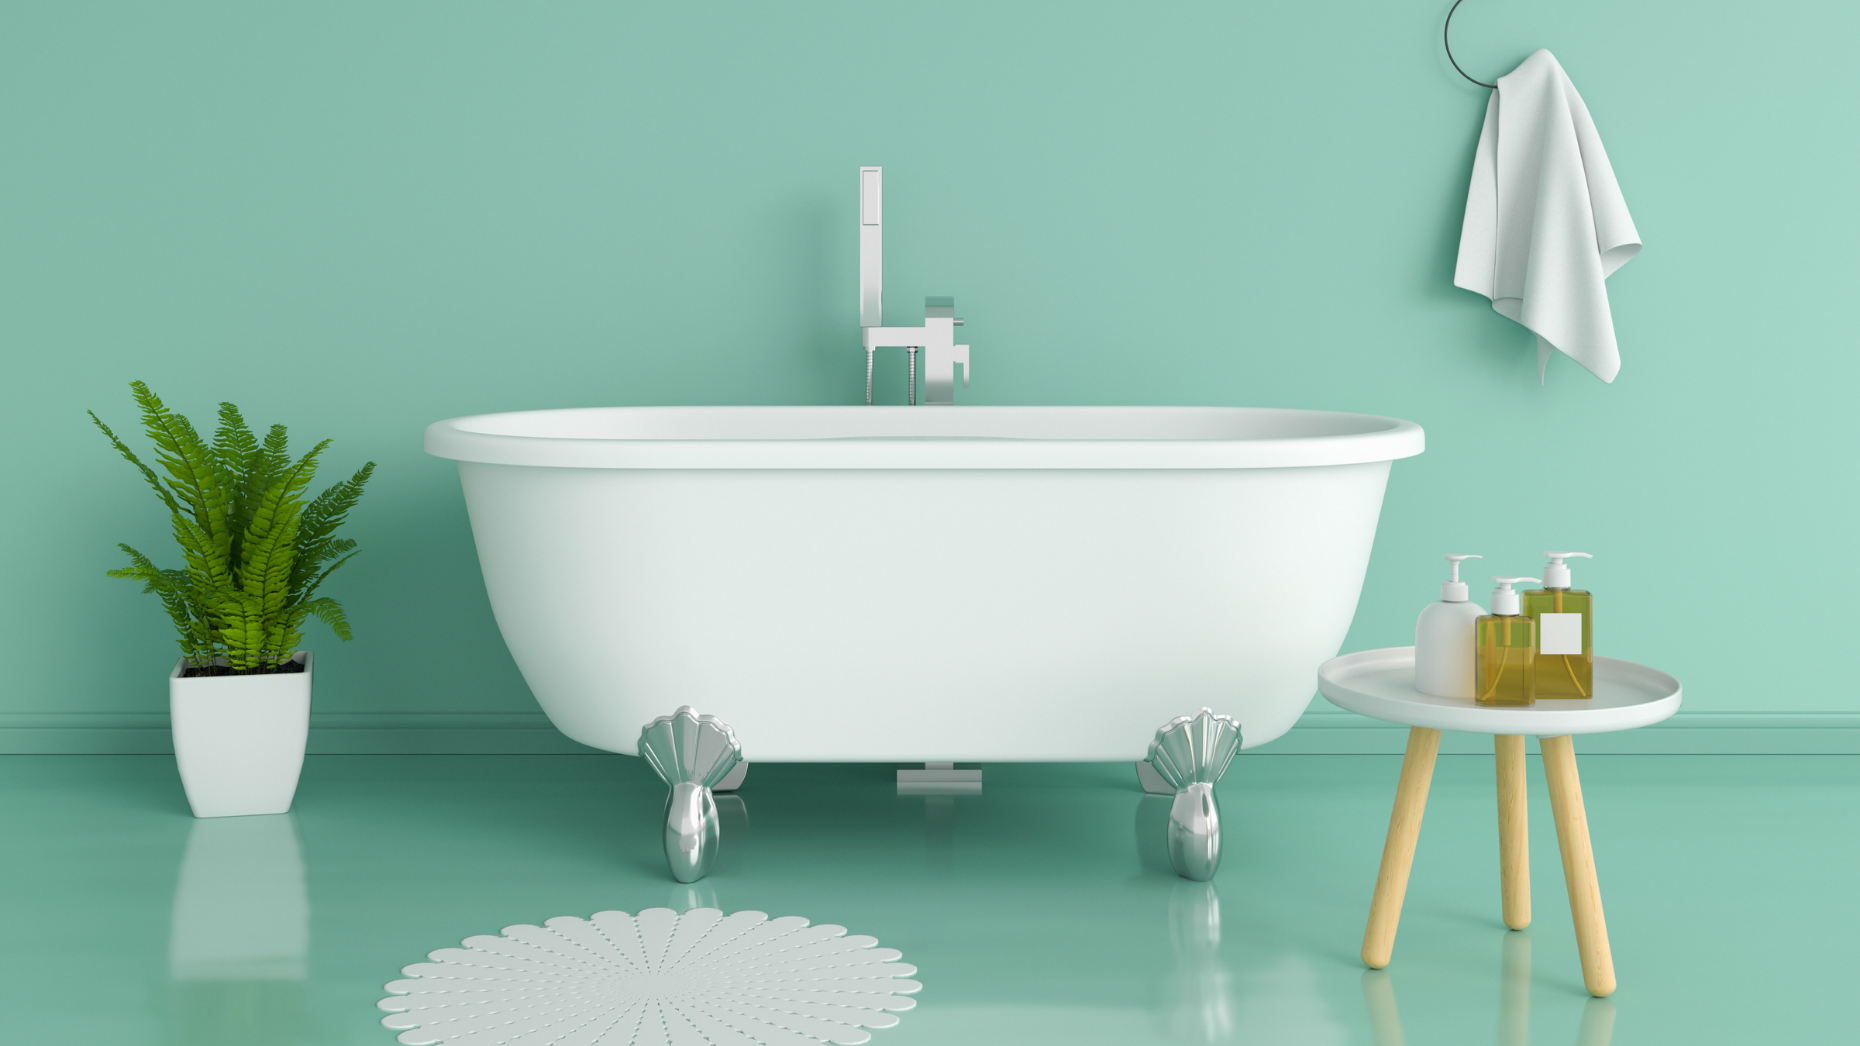 Scrub-a-dub-dub: What homeowners need to know about bathtubs